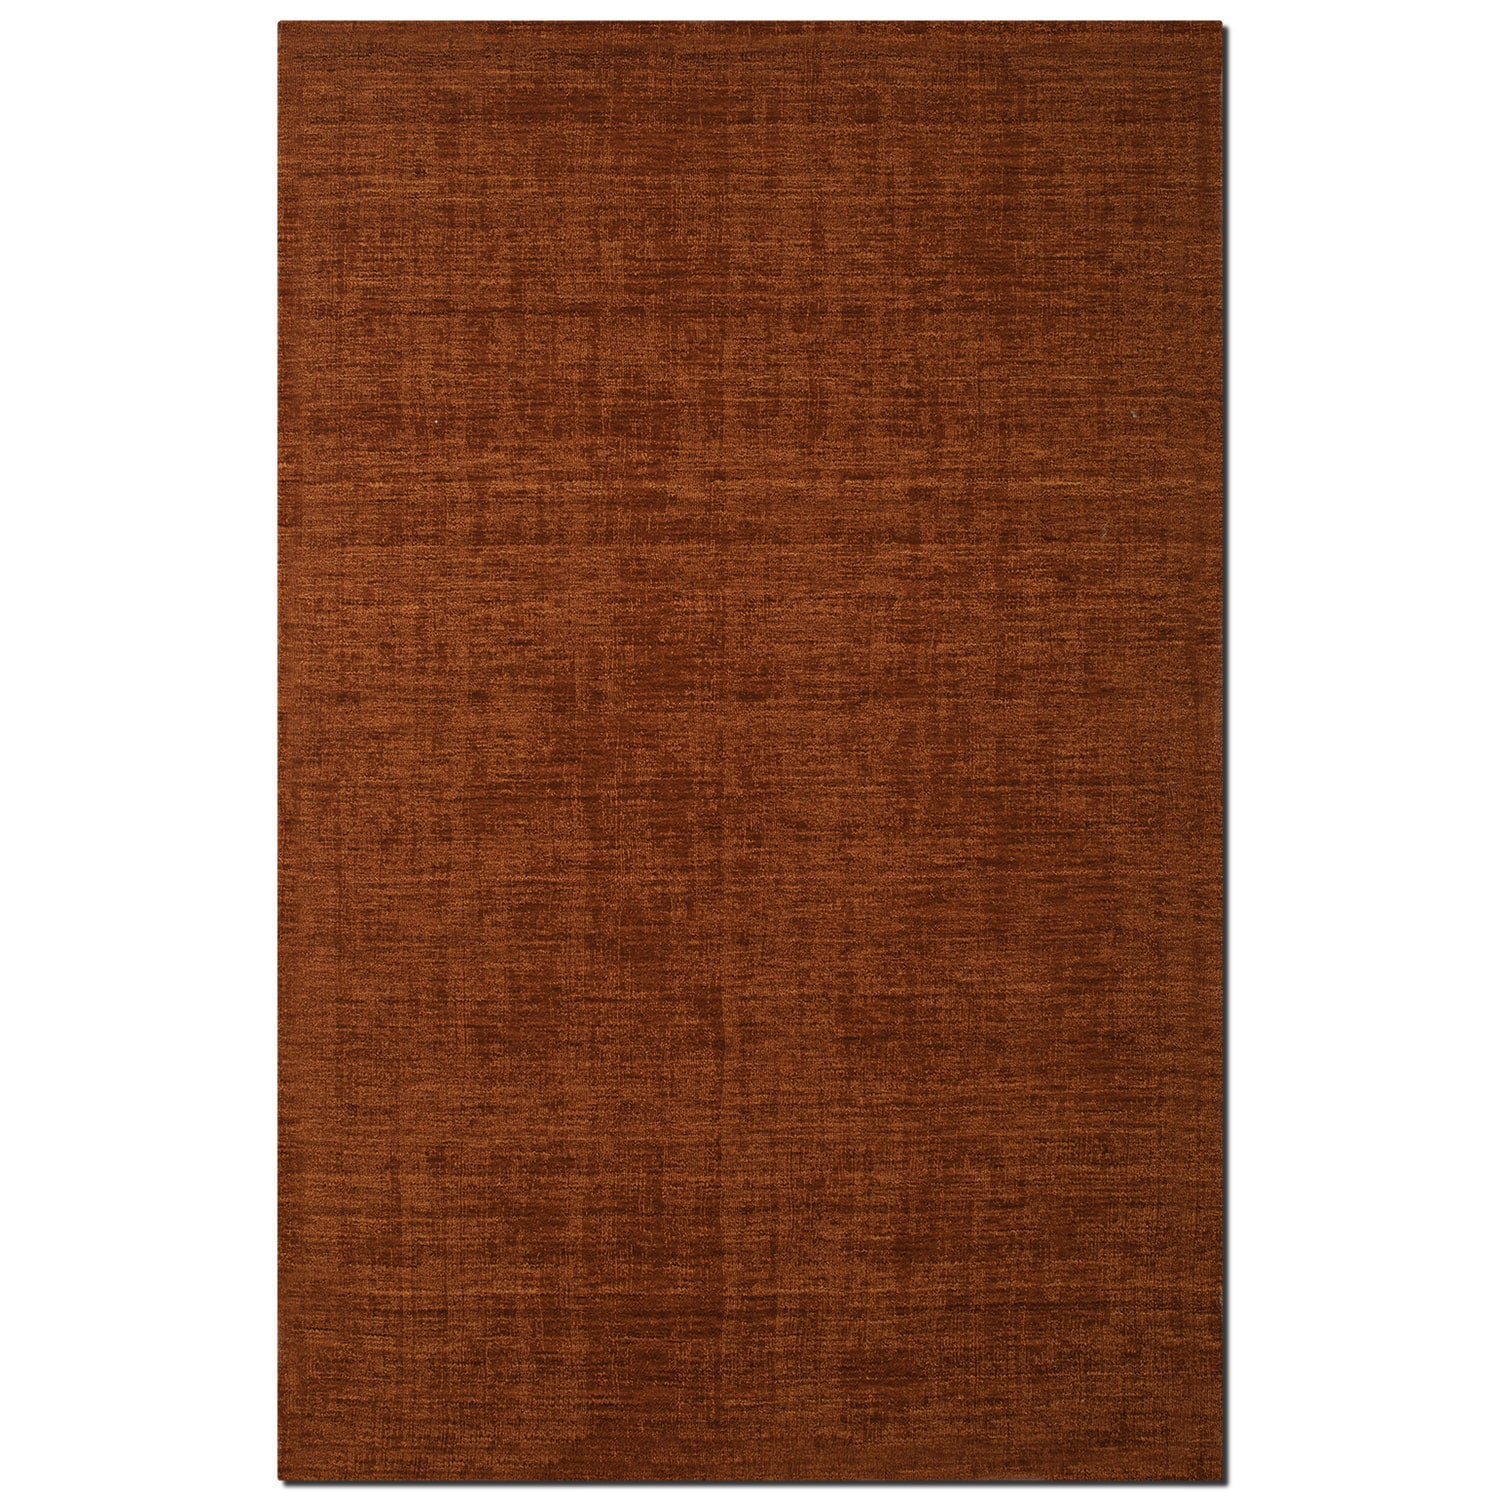 Rugs - Basics 5' x 8' Area Rug - Orange